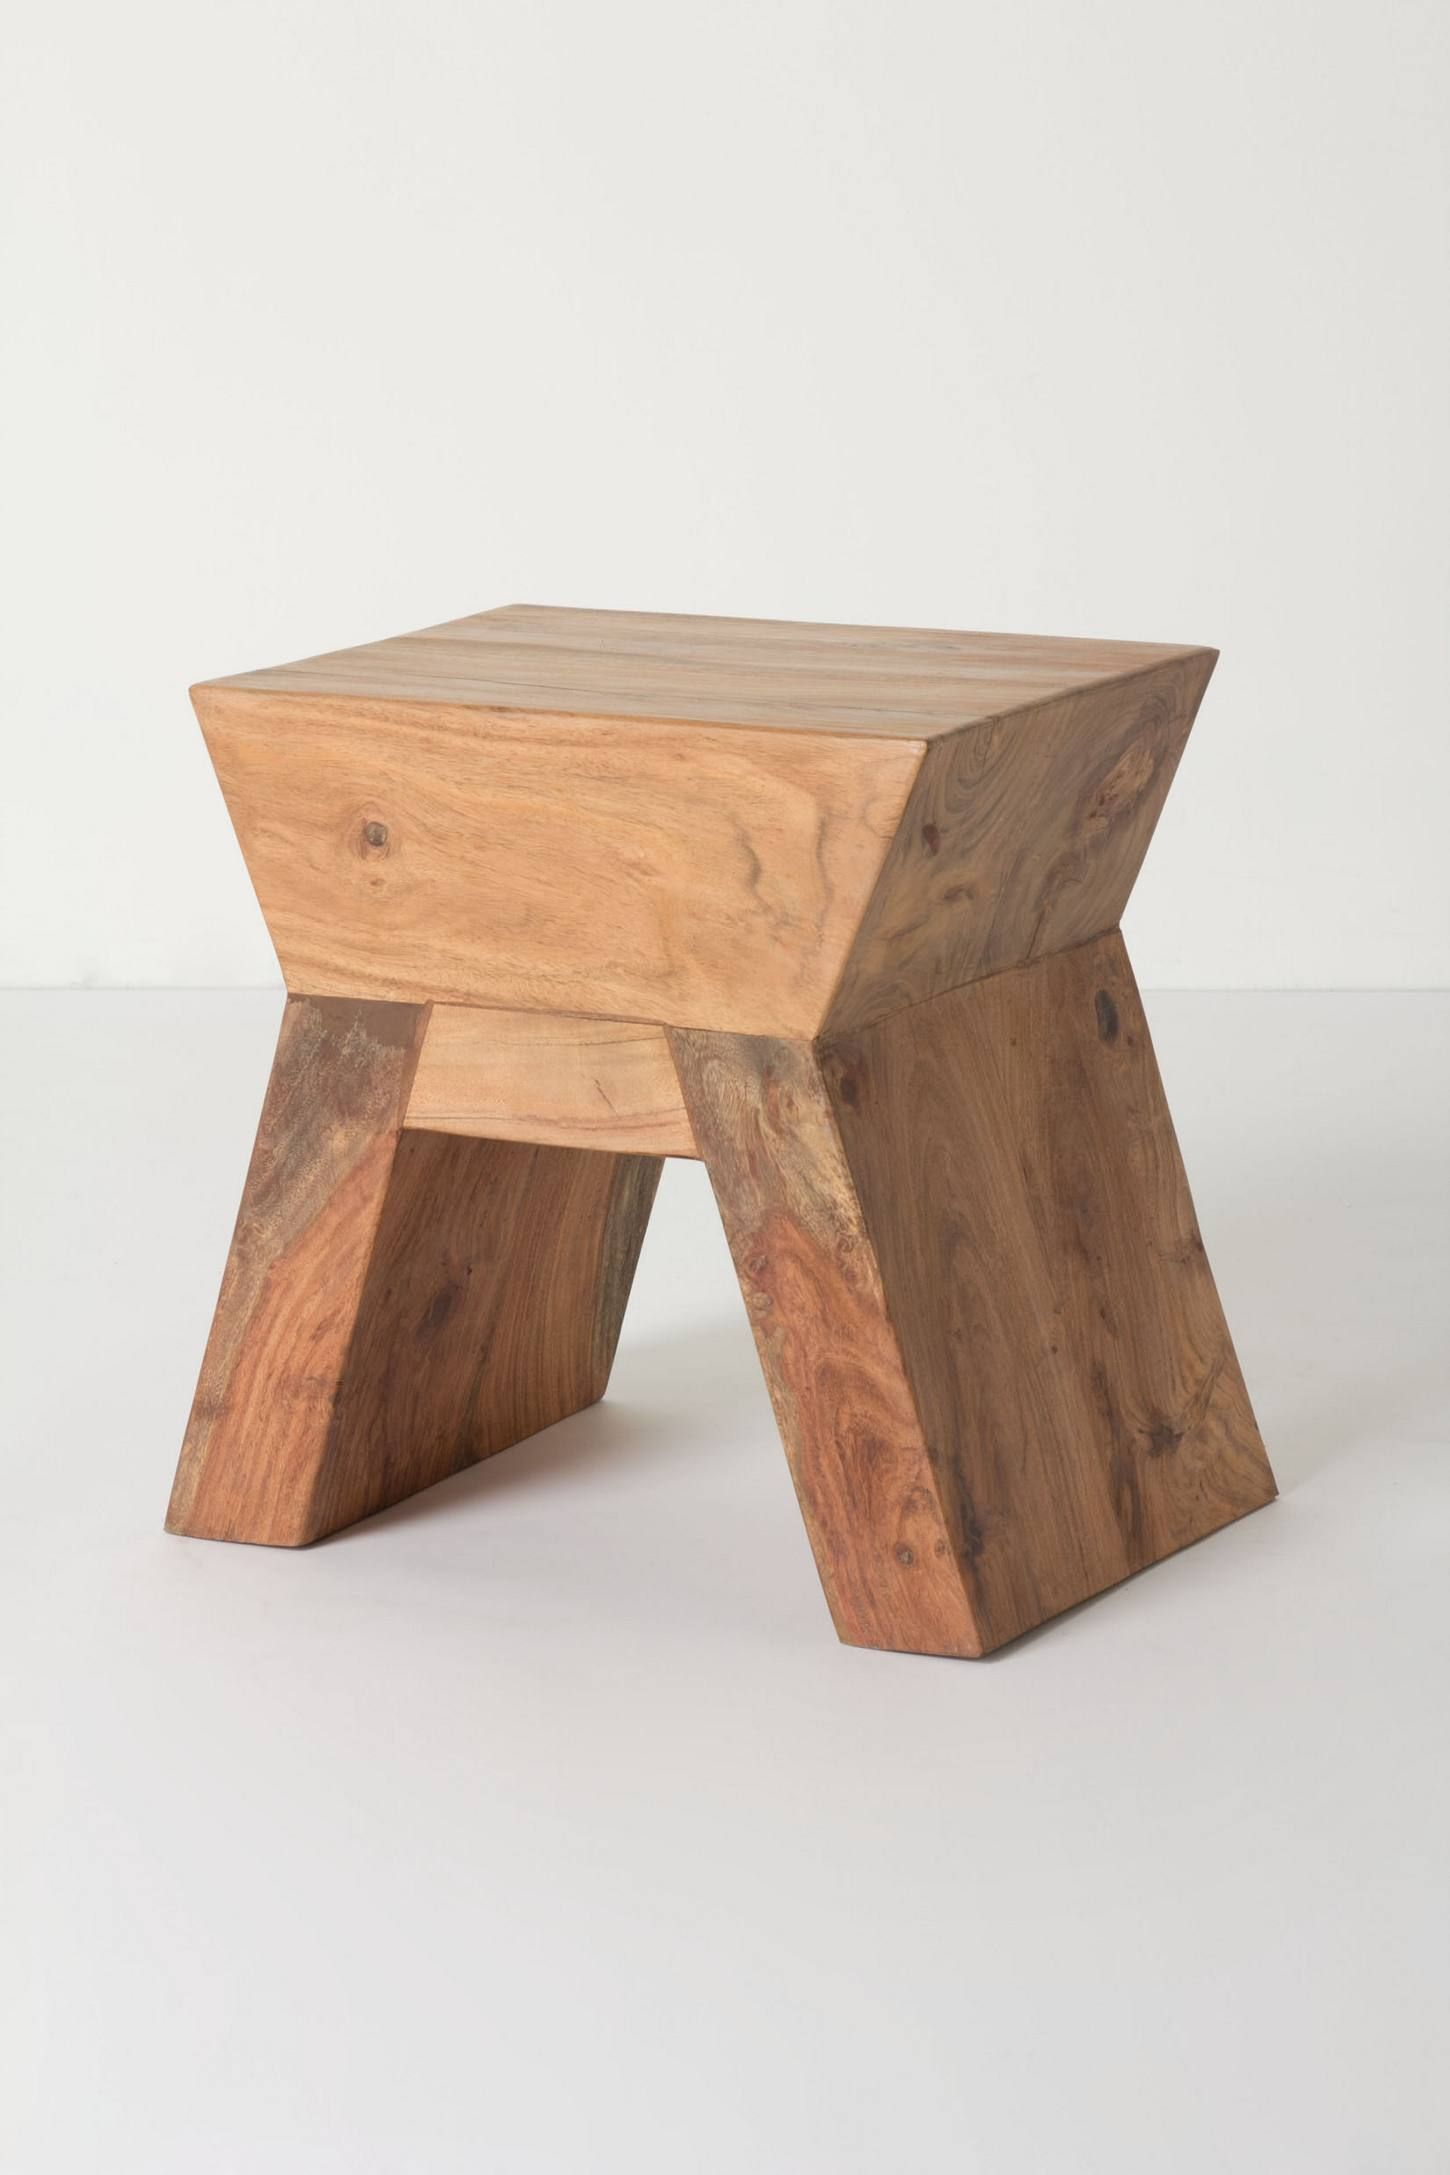 Hey Möbel Tasman Arched Stool Anthropologie Hey Son In Law Will You Make